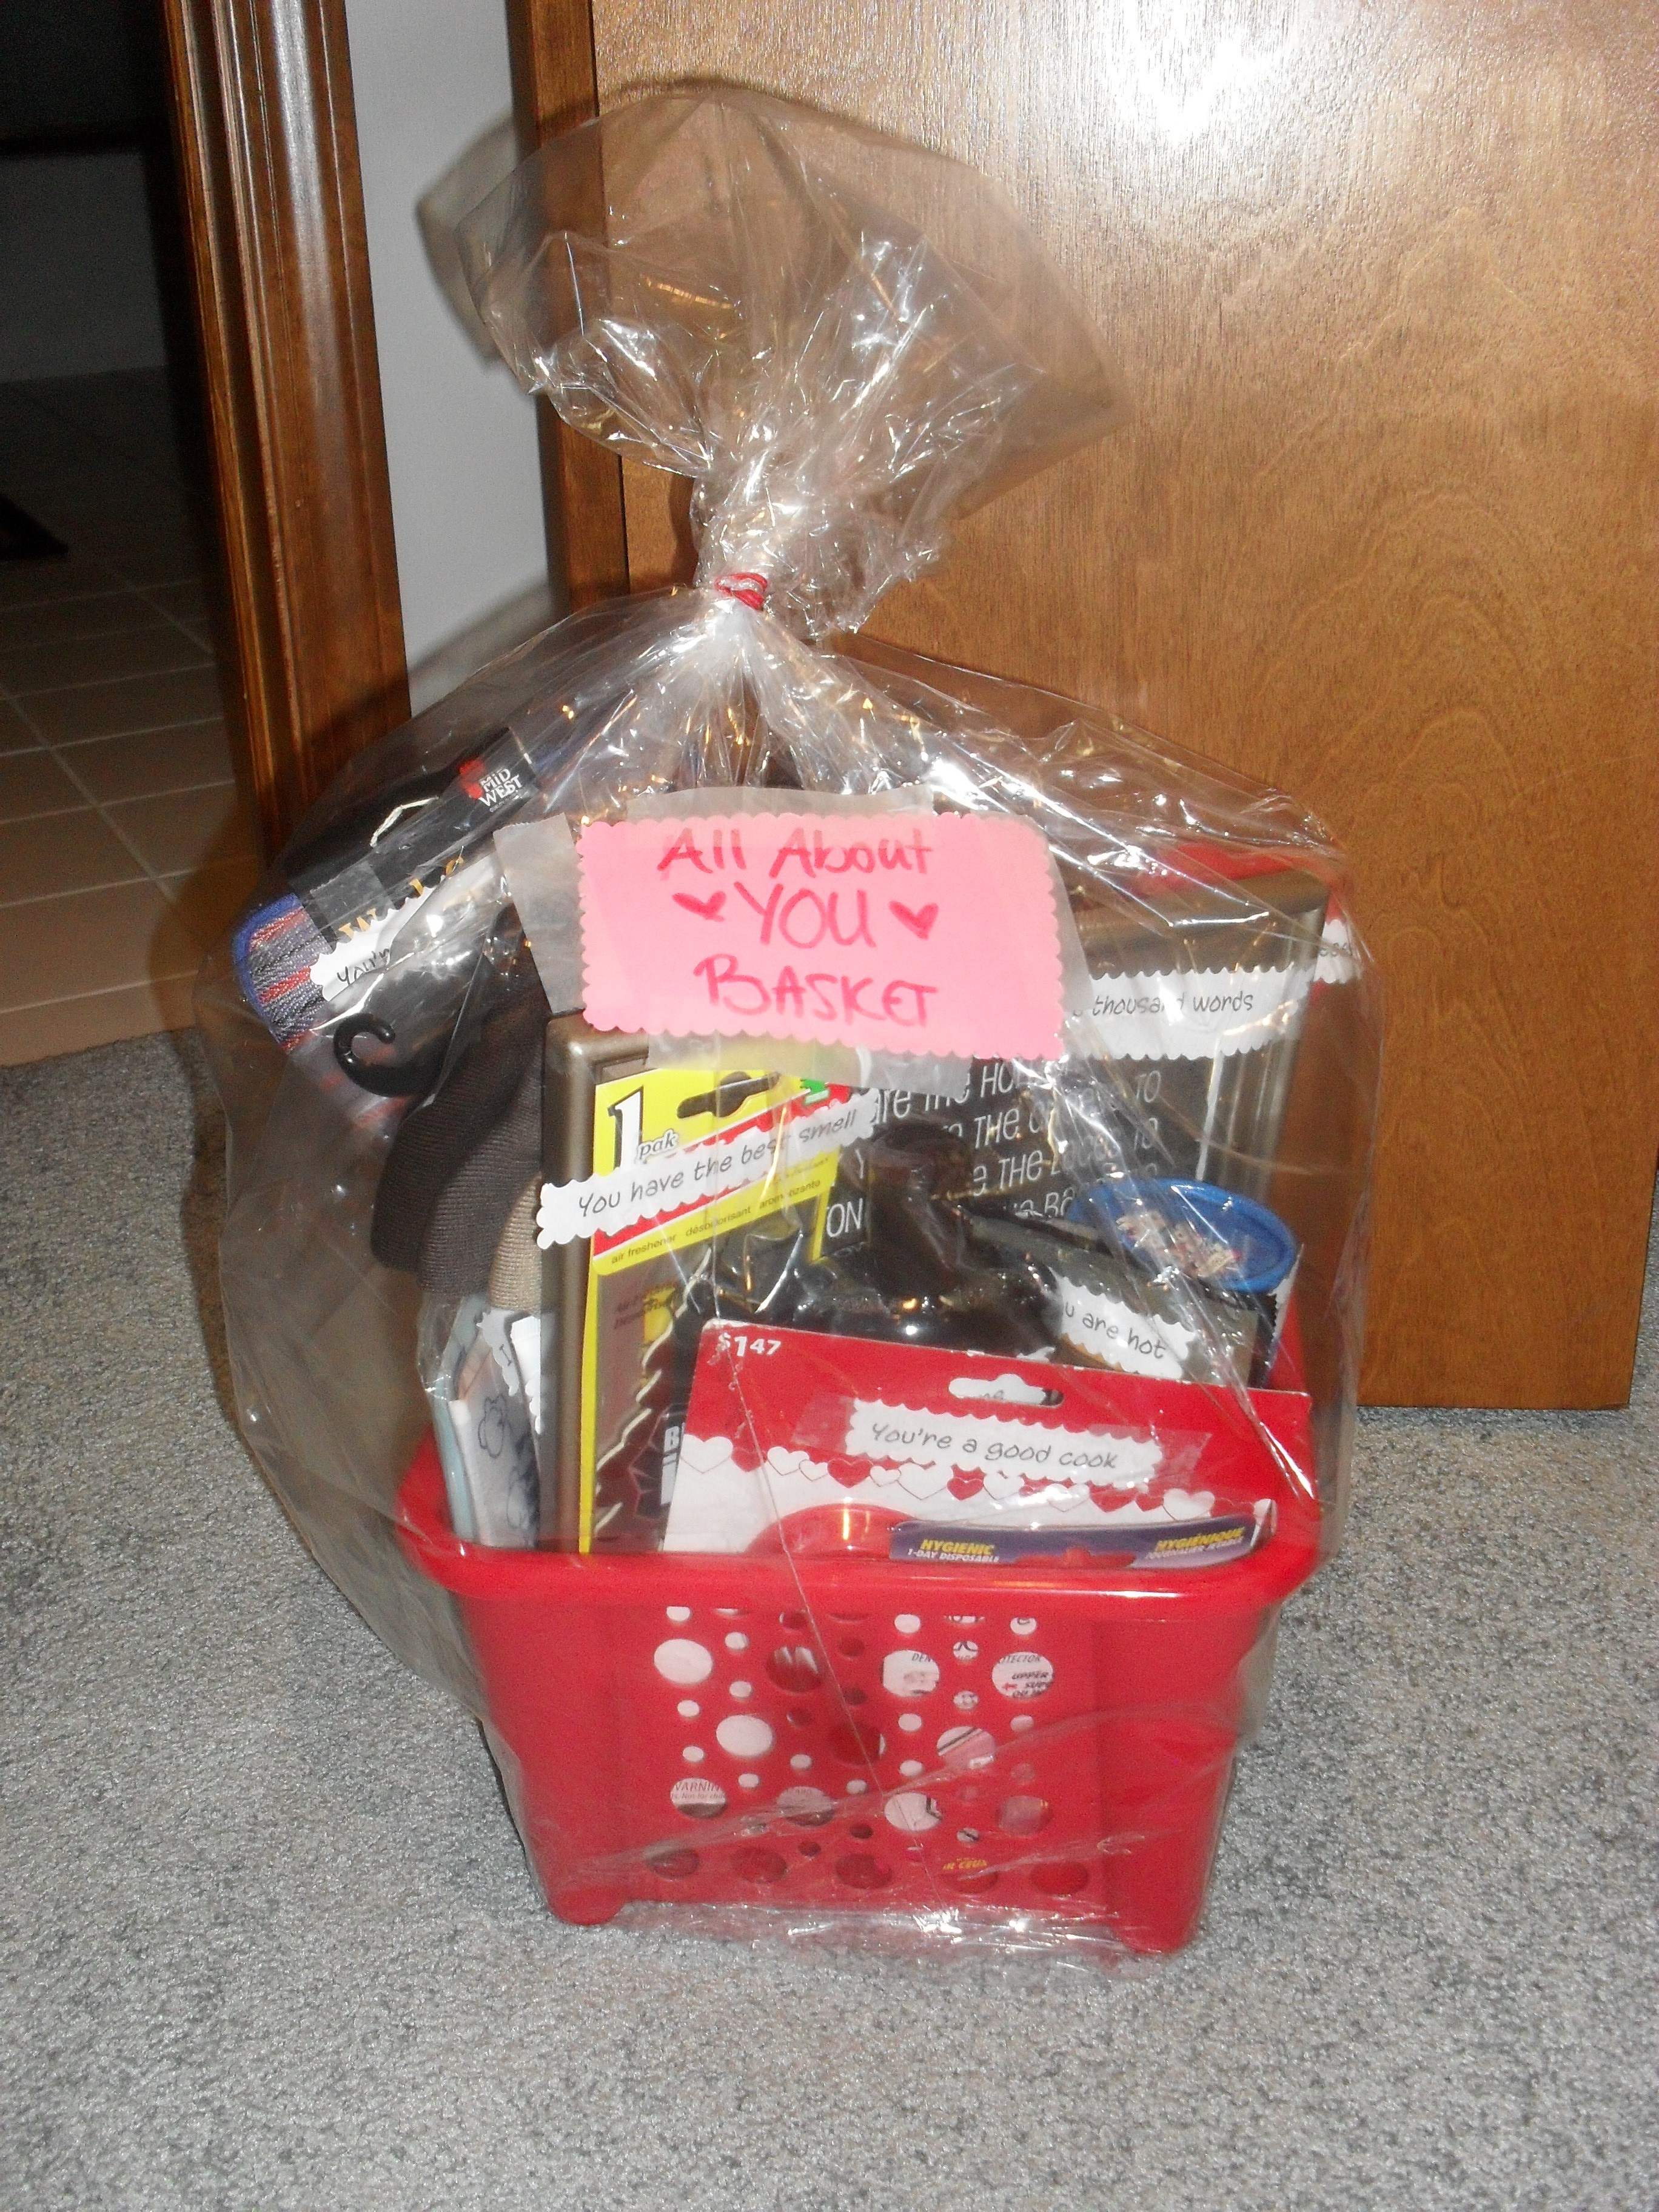 *All About You Basket*